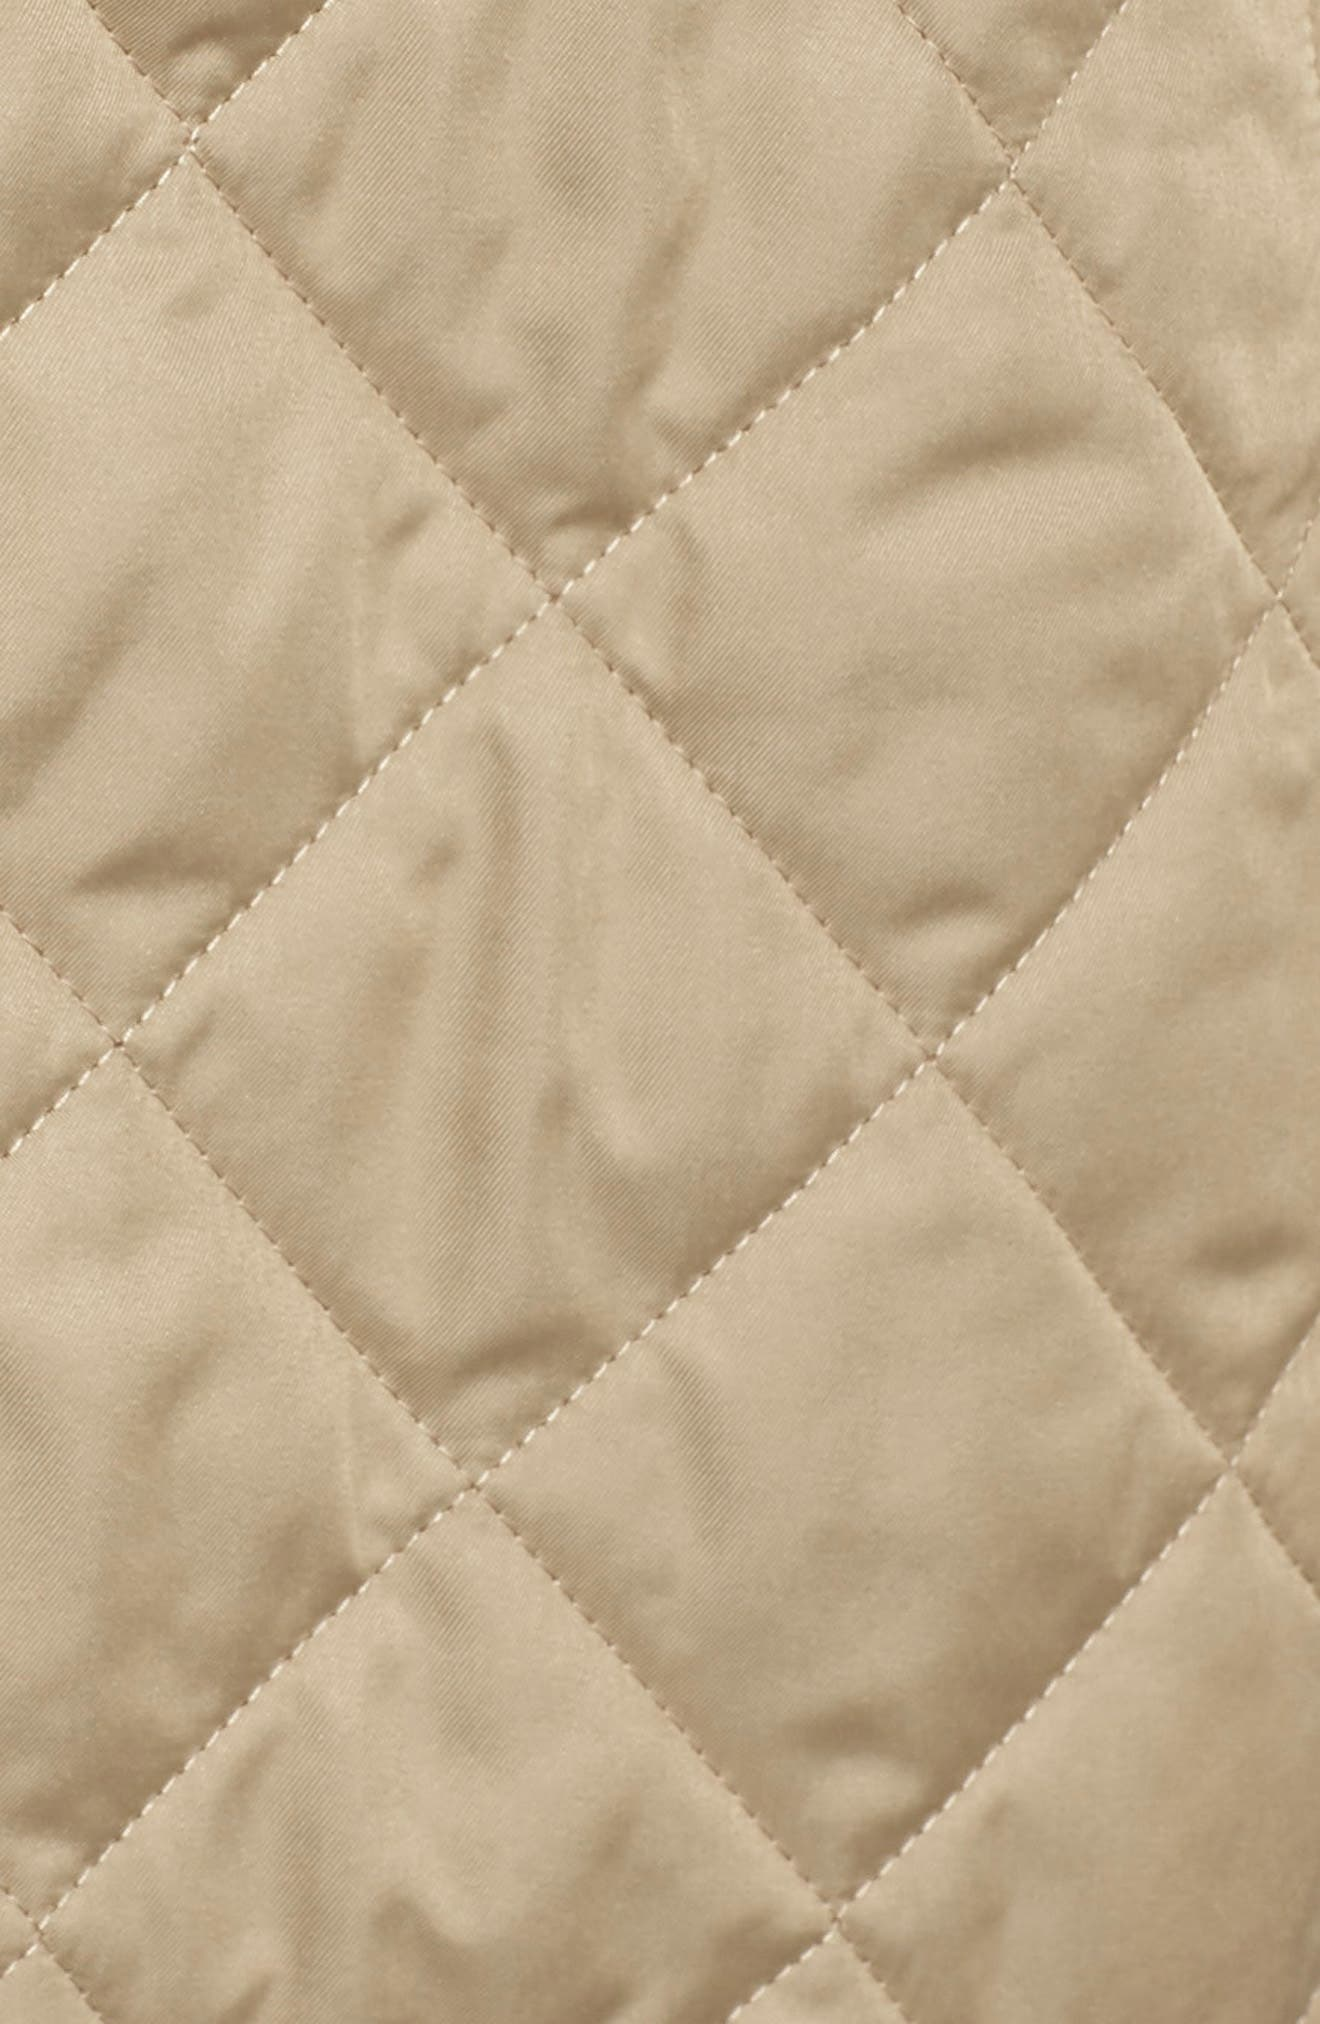 Frankby 18 Quilted Jacket,                             Alternate thumbnail 11, color,                             CANVAS